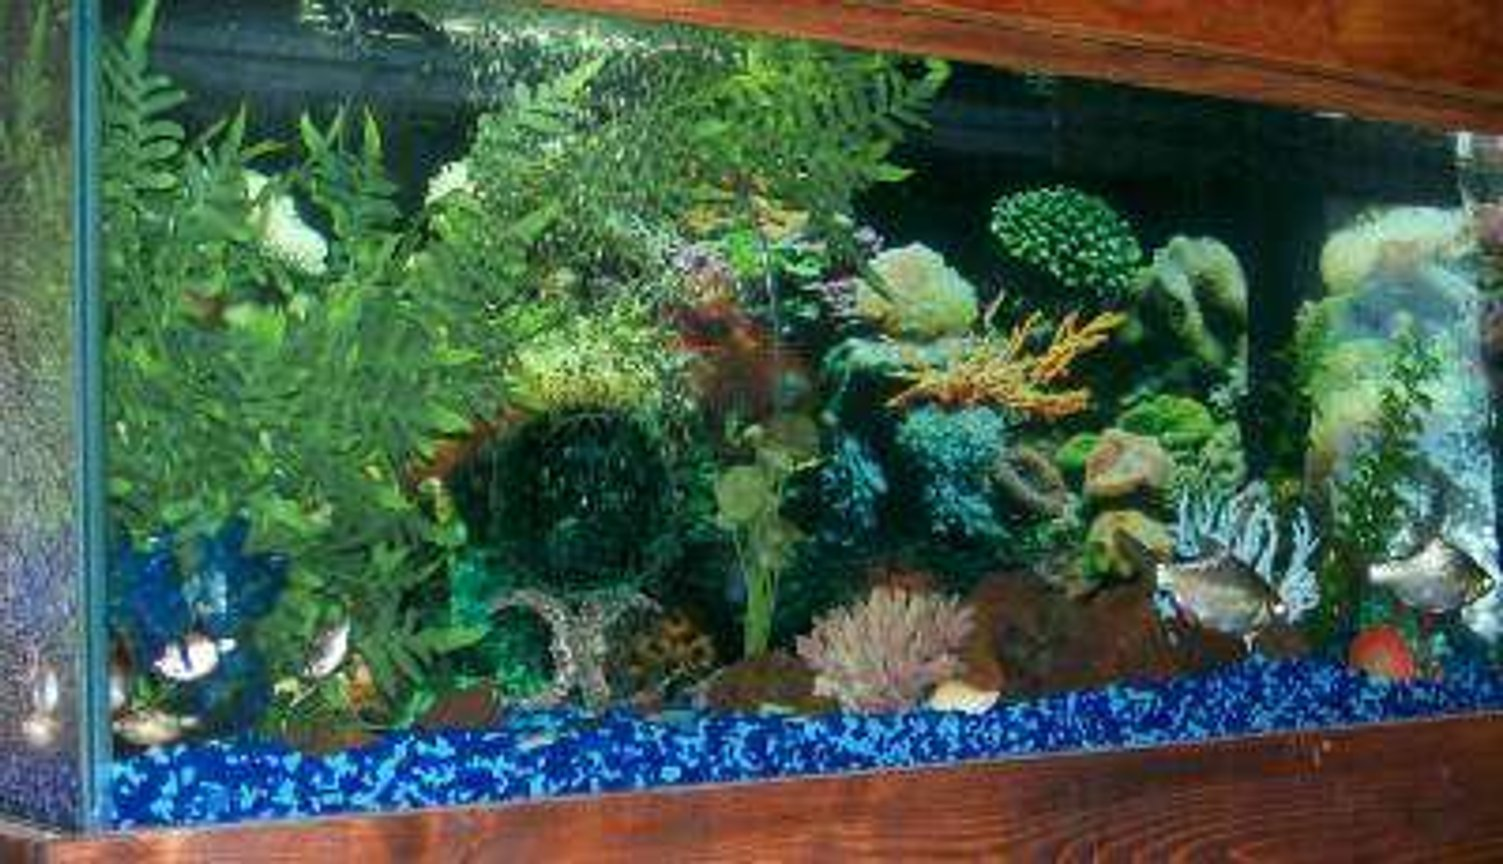 40 gallons freshwater fish tank (mostly fish and non-living decorations) - 40 gal, fake plants and coral